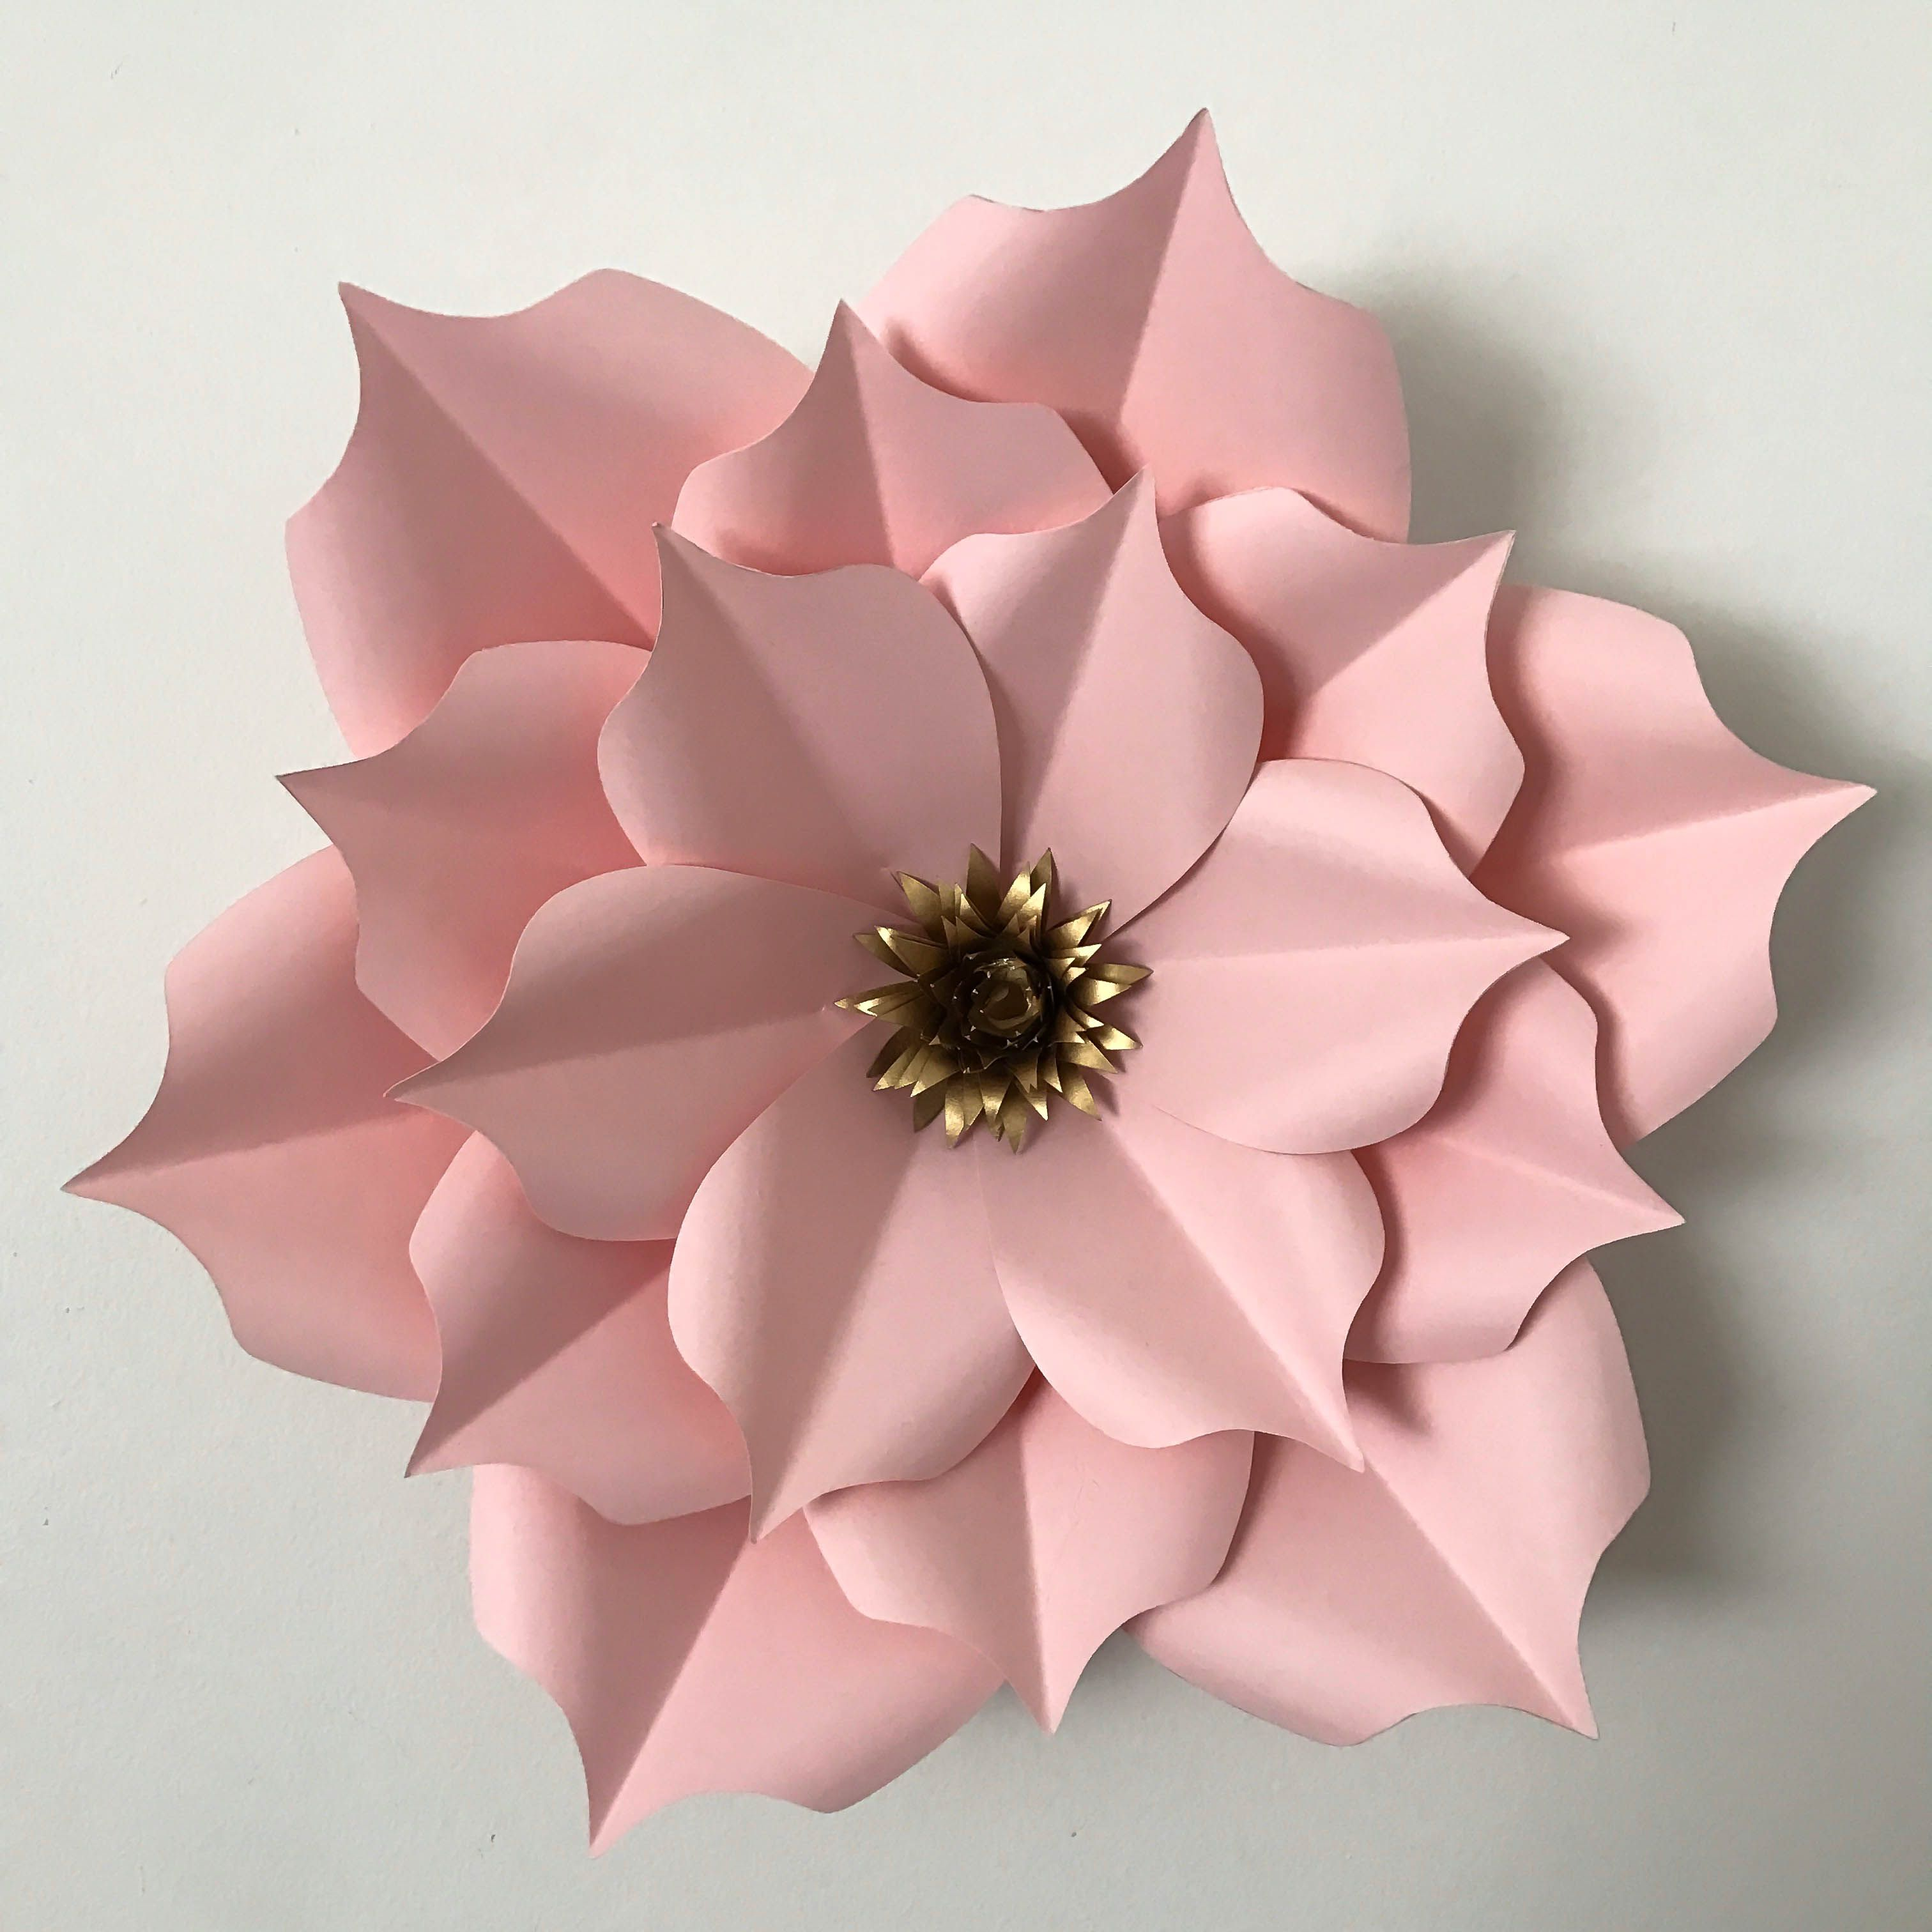 Pin On Diy Giant Paper Flower Templates Etsy Listing